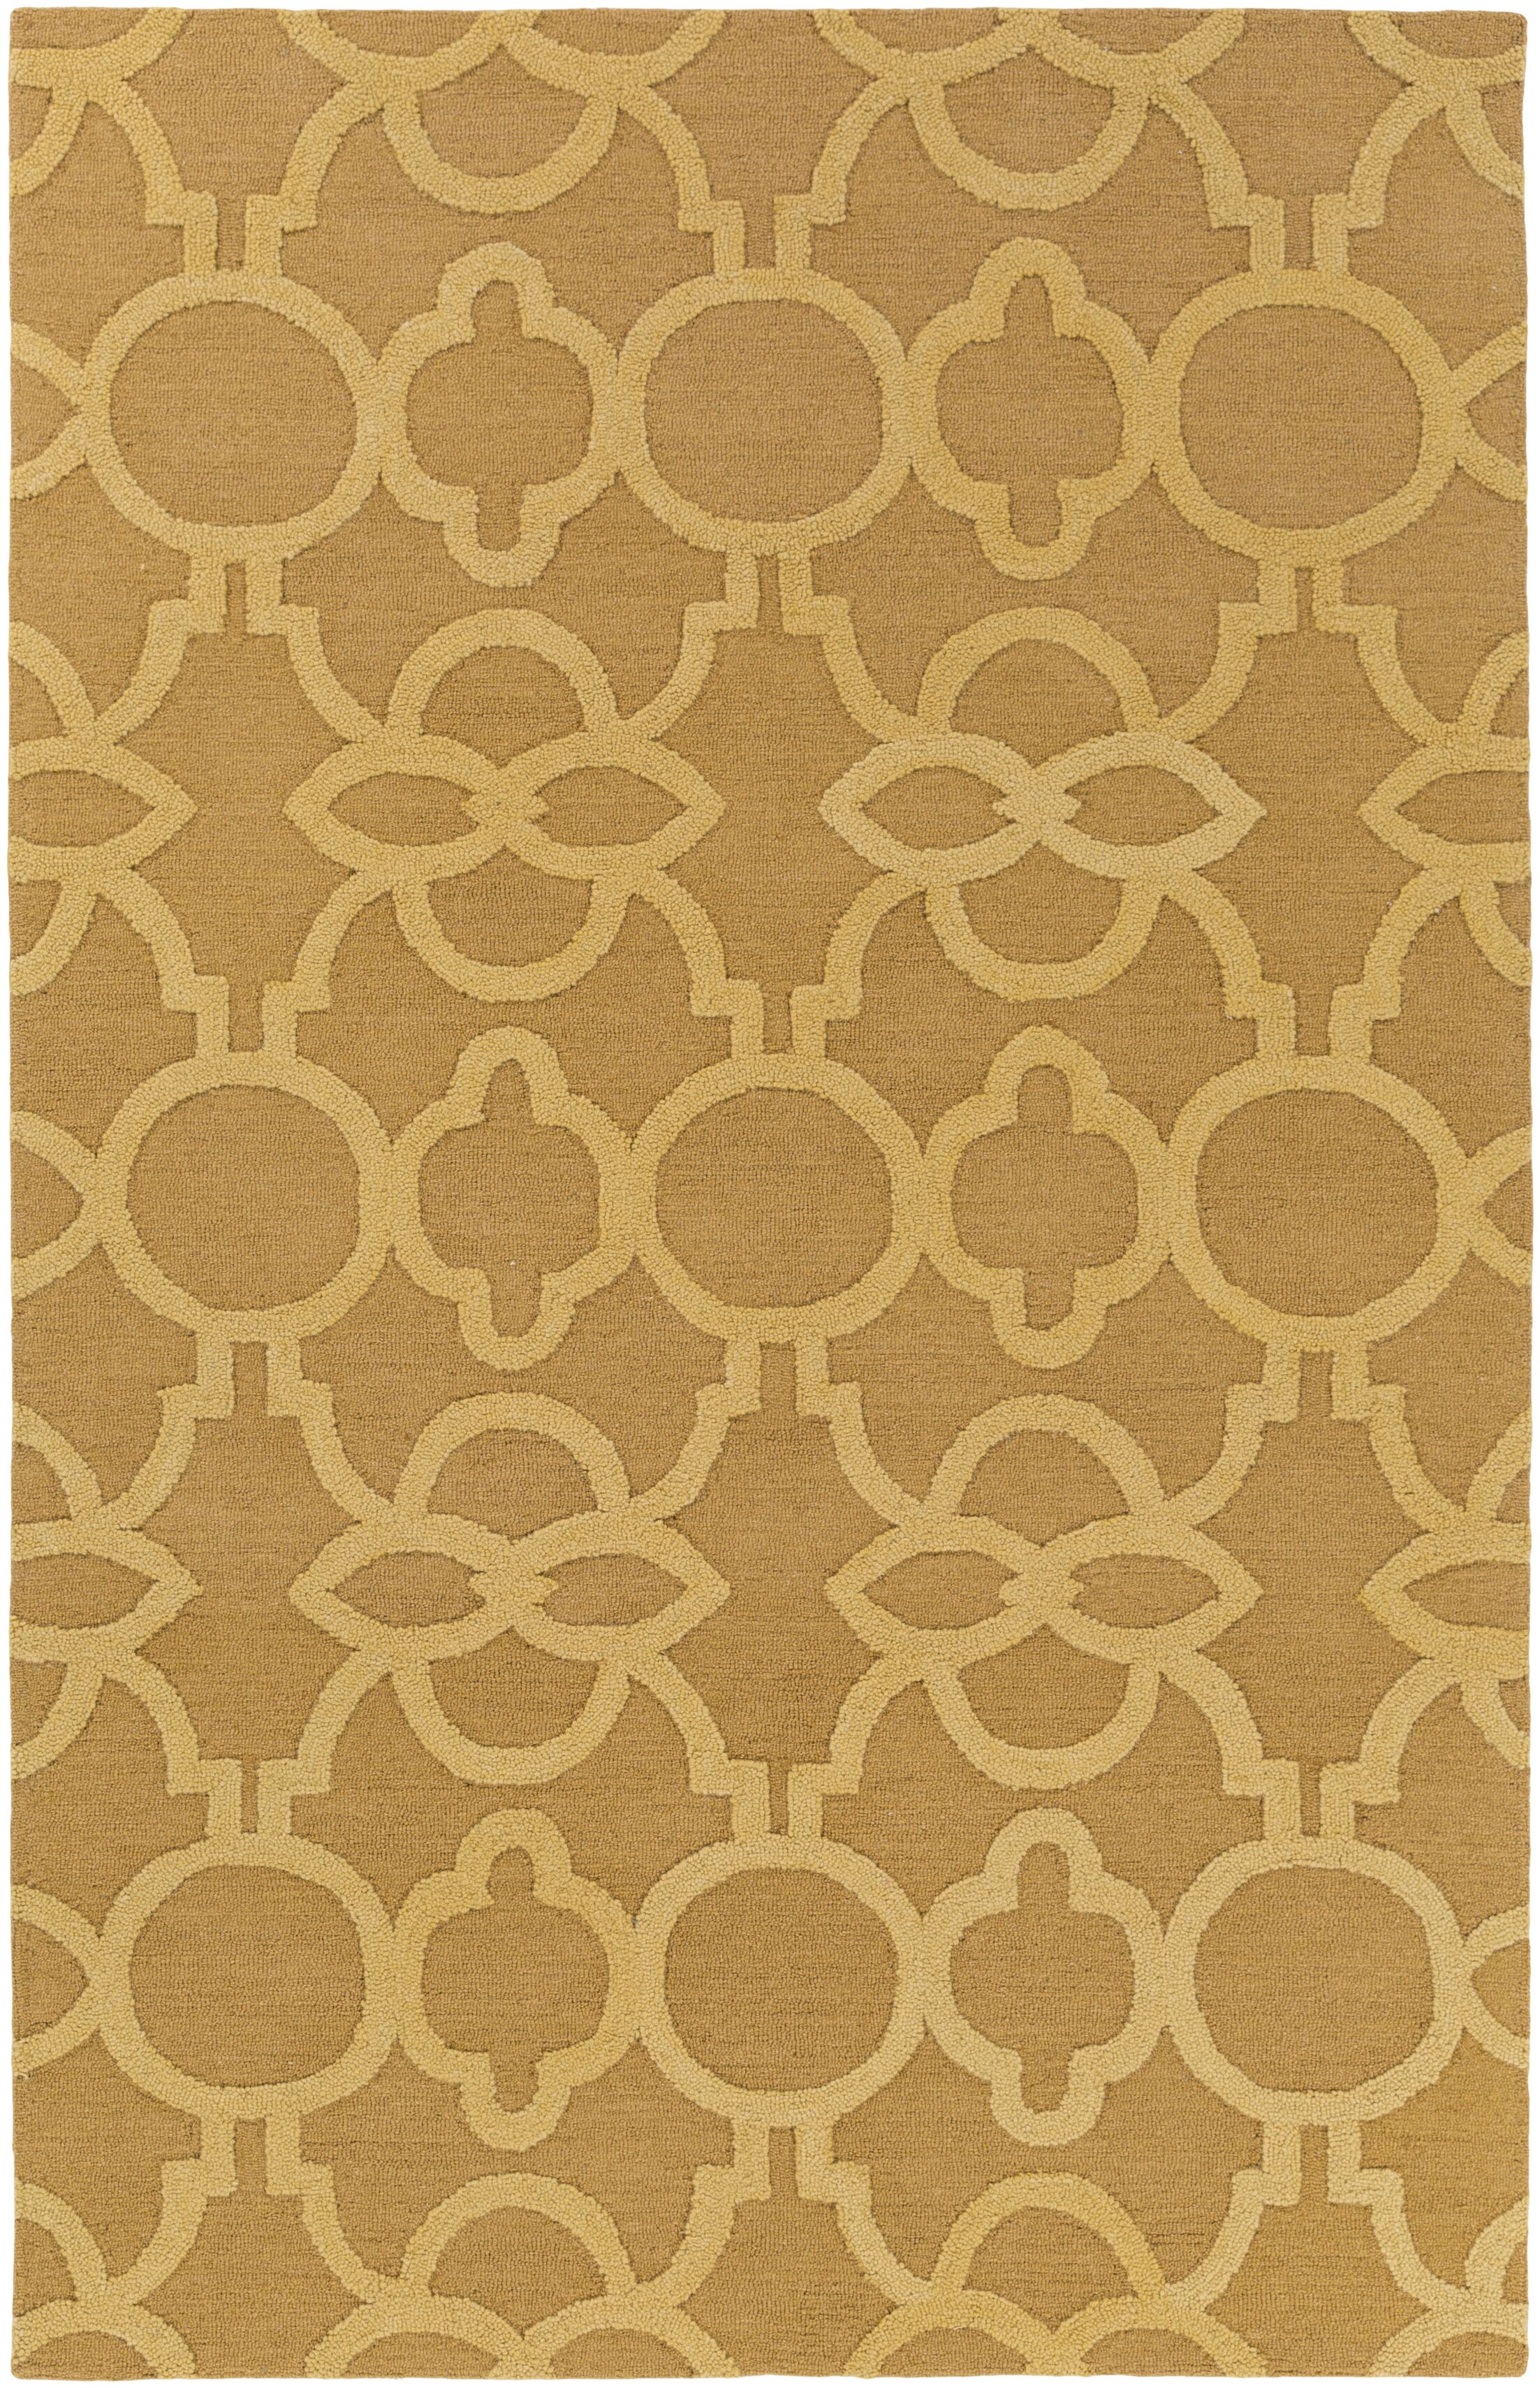 Sandi Hand-Crafted Gold Area Rug Rug Size: Rectangle 8' x 11'